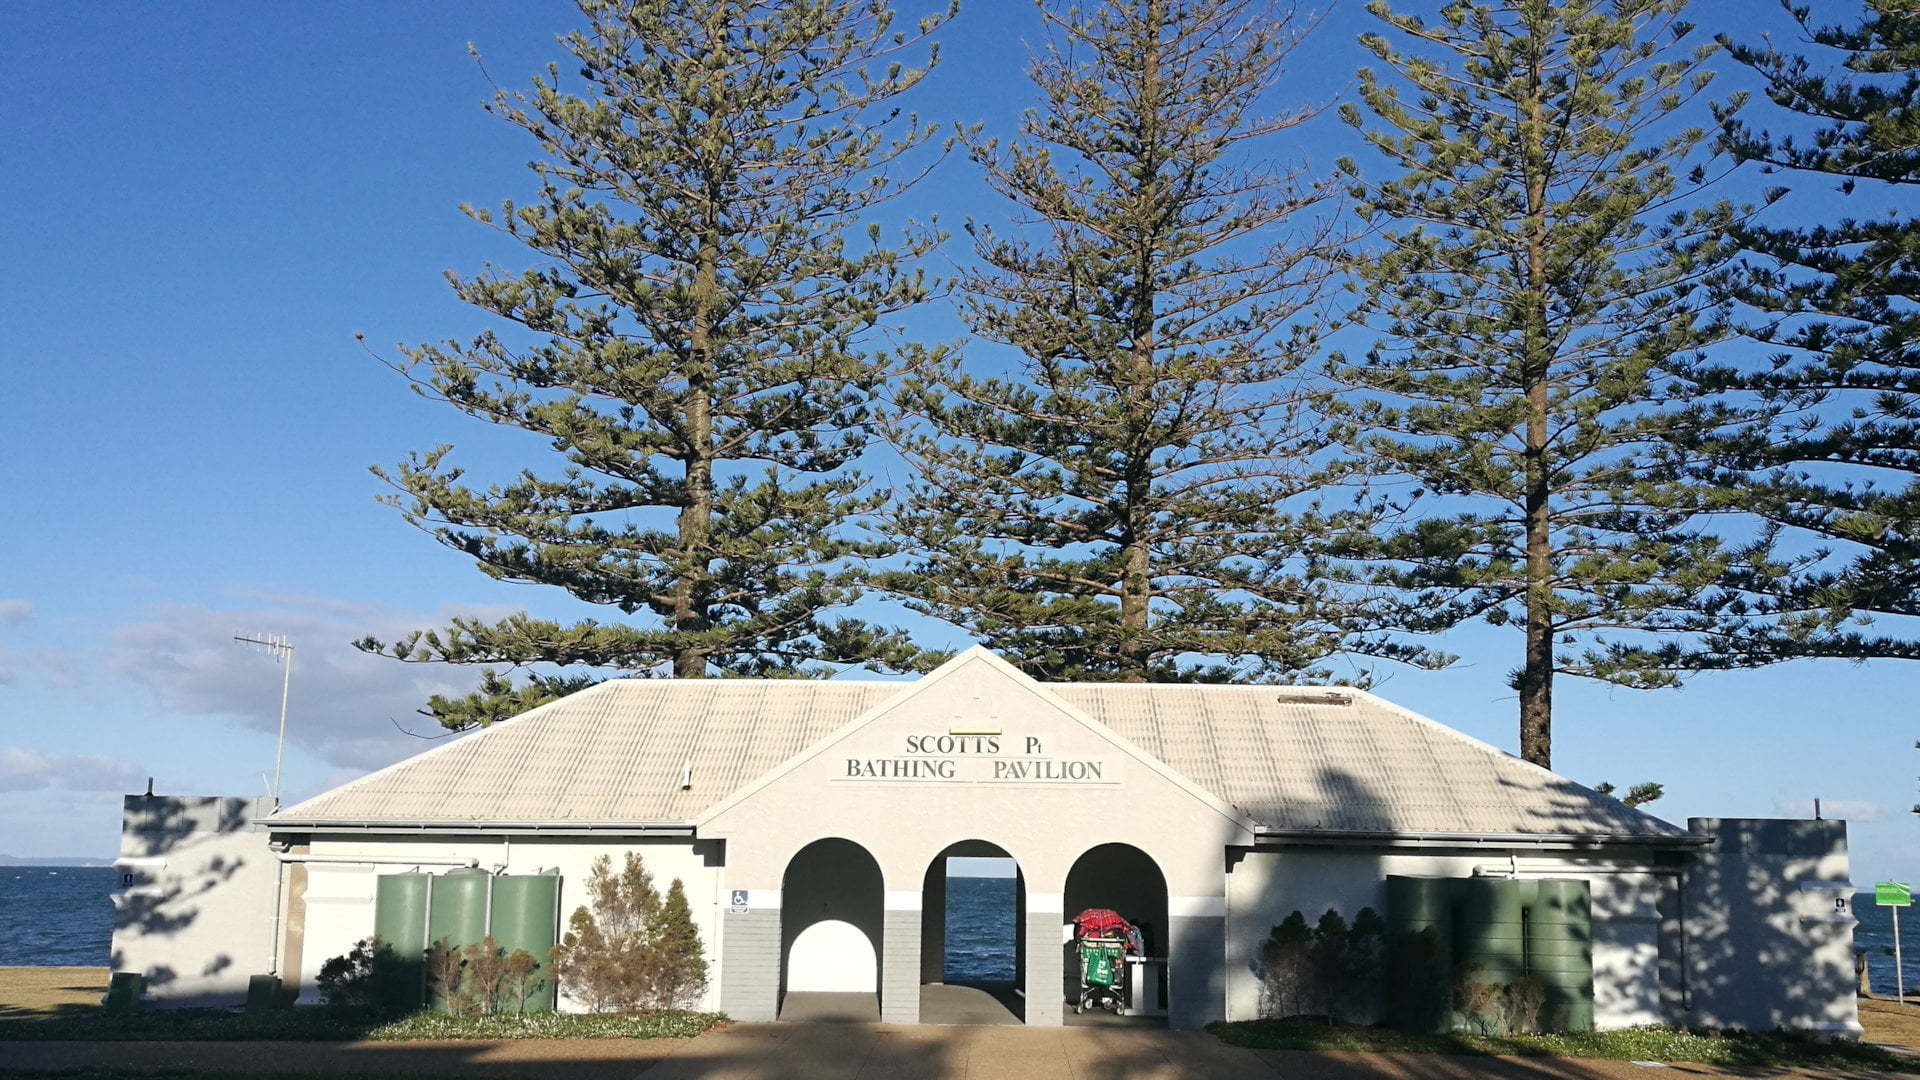 Scotts Point Bathing Pavilion, at Woody Point in Redcliffe Peninsula